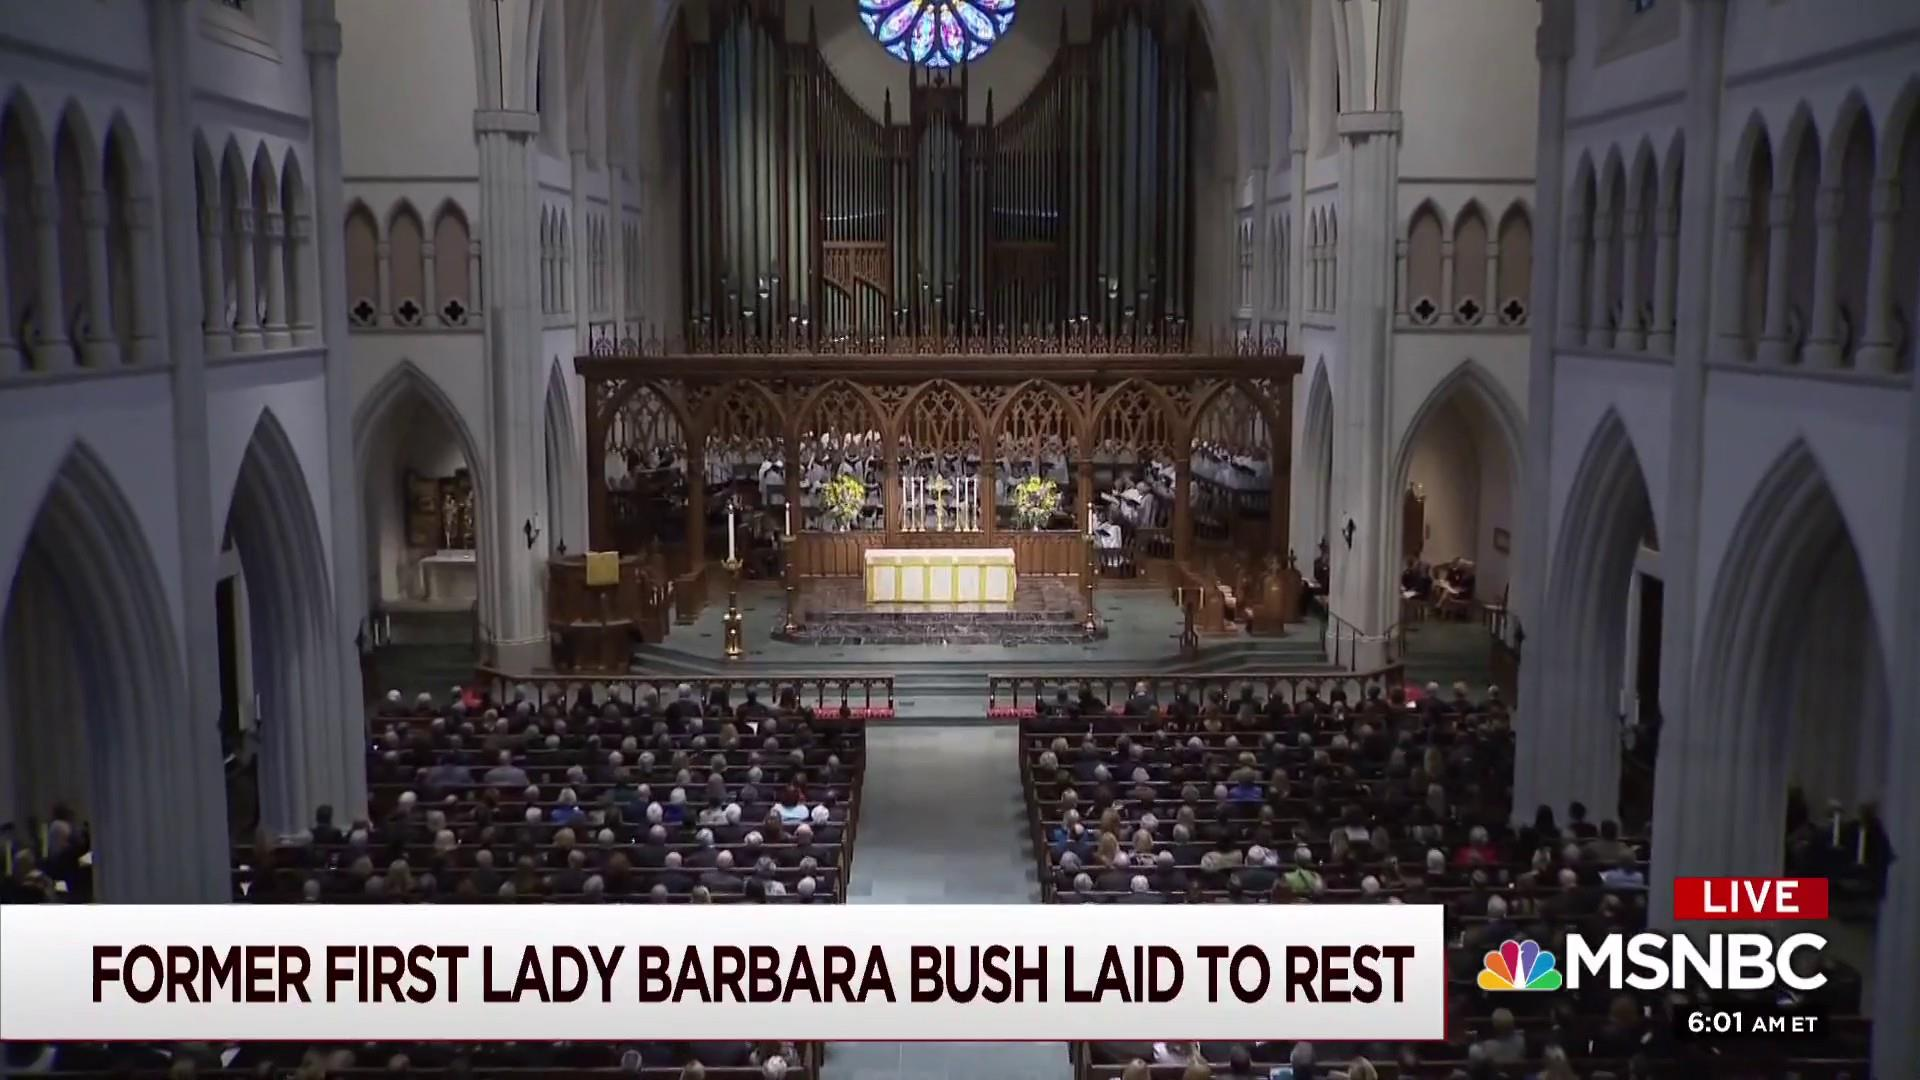 Meacham: Bush's service was for family and the American family